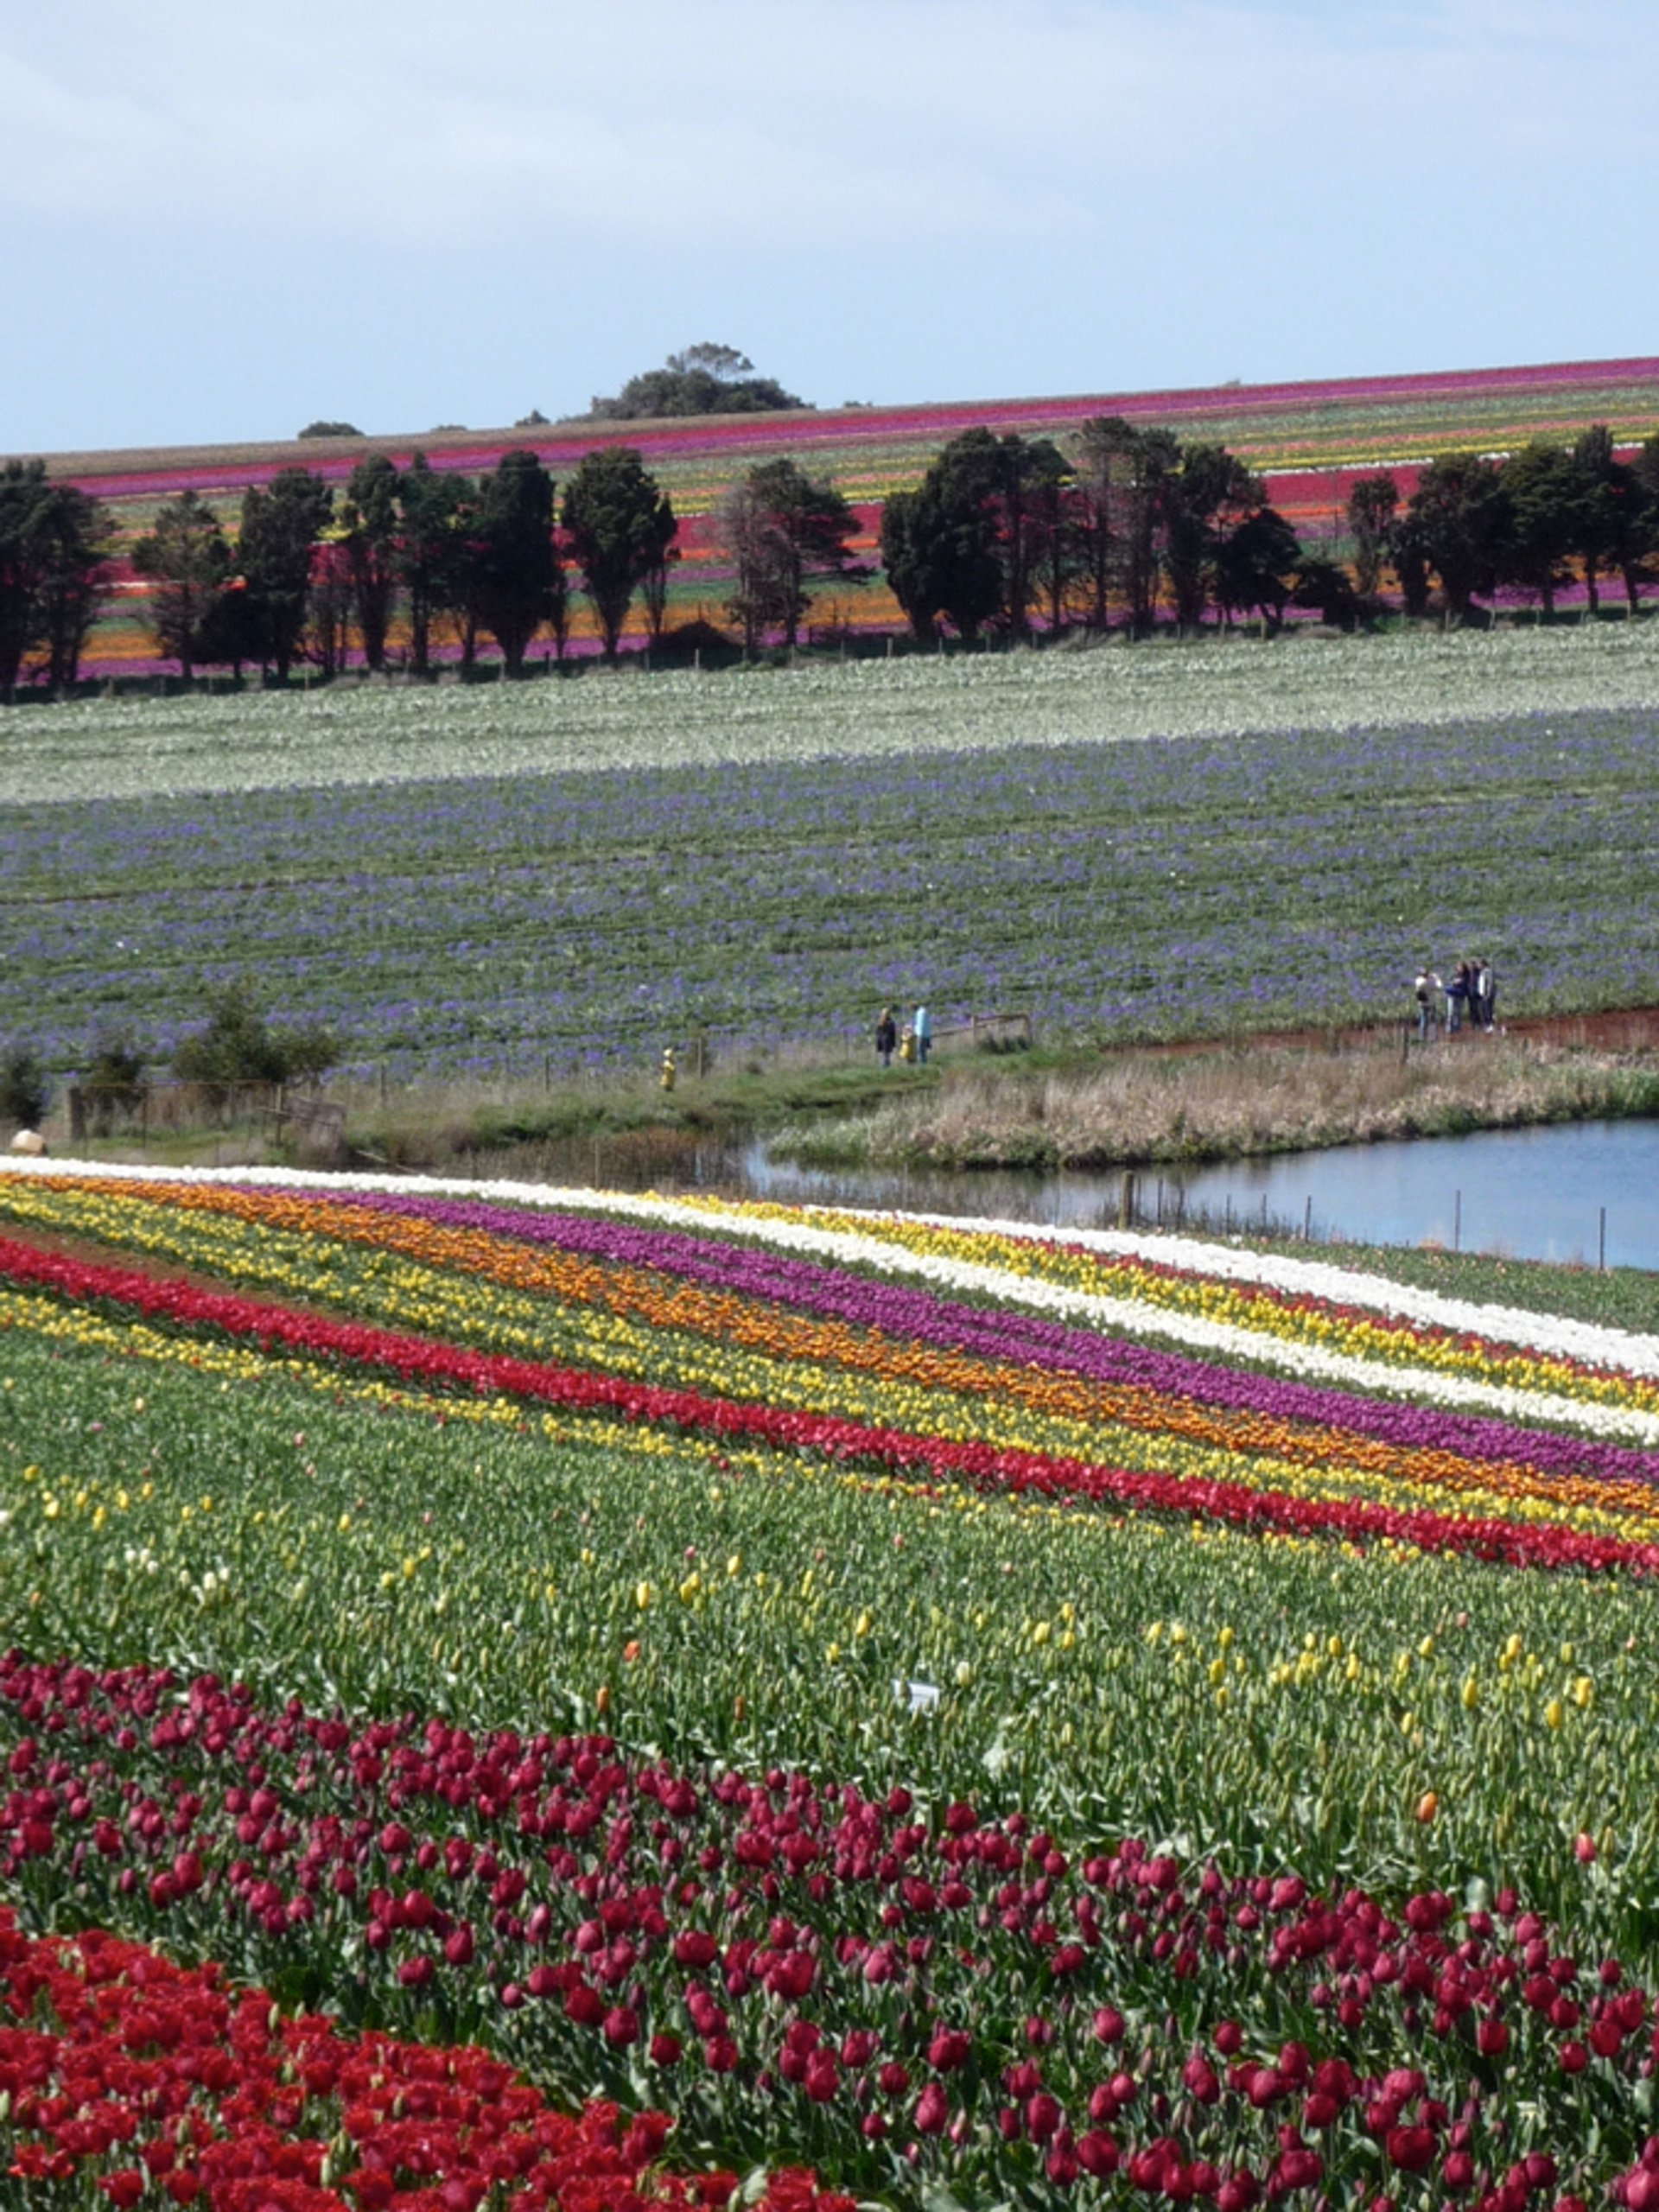 Best time to see Blooming Tulips in Tasmania